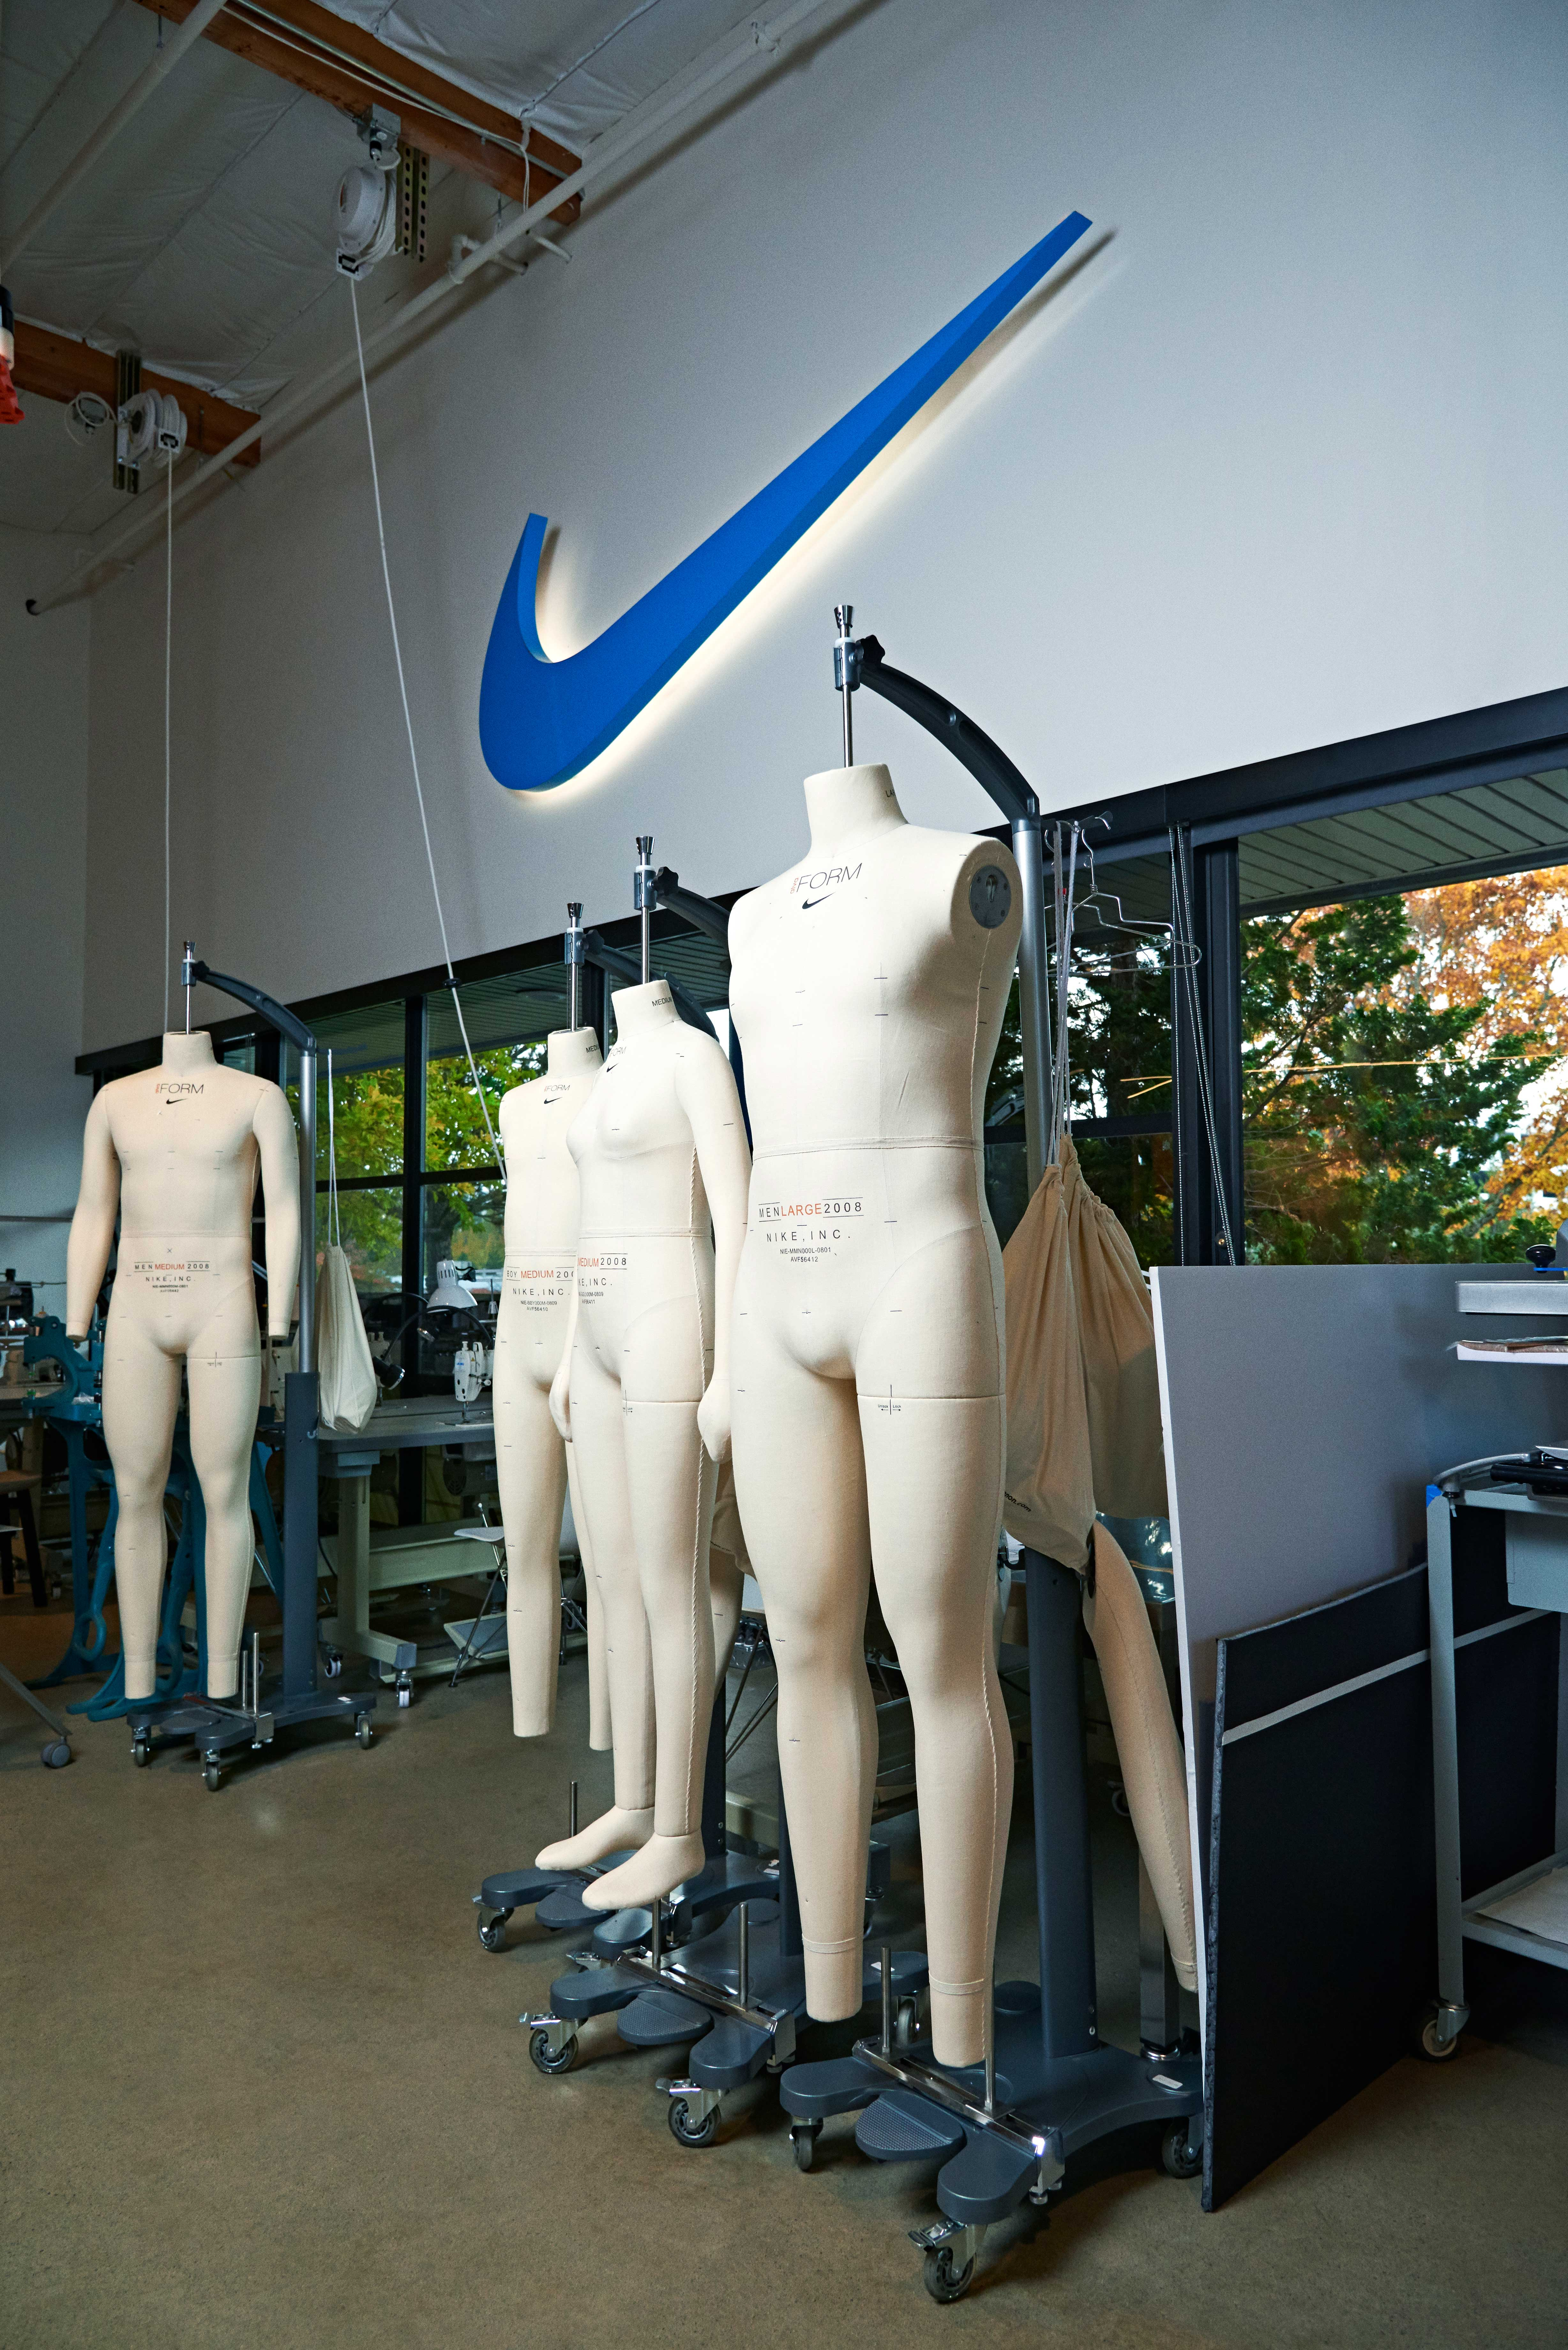 Mannequins inside Nike's sewing studio await designers' latest apparel ideas.